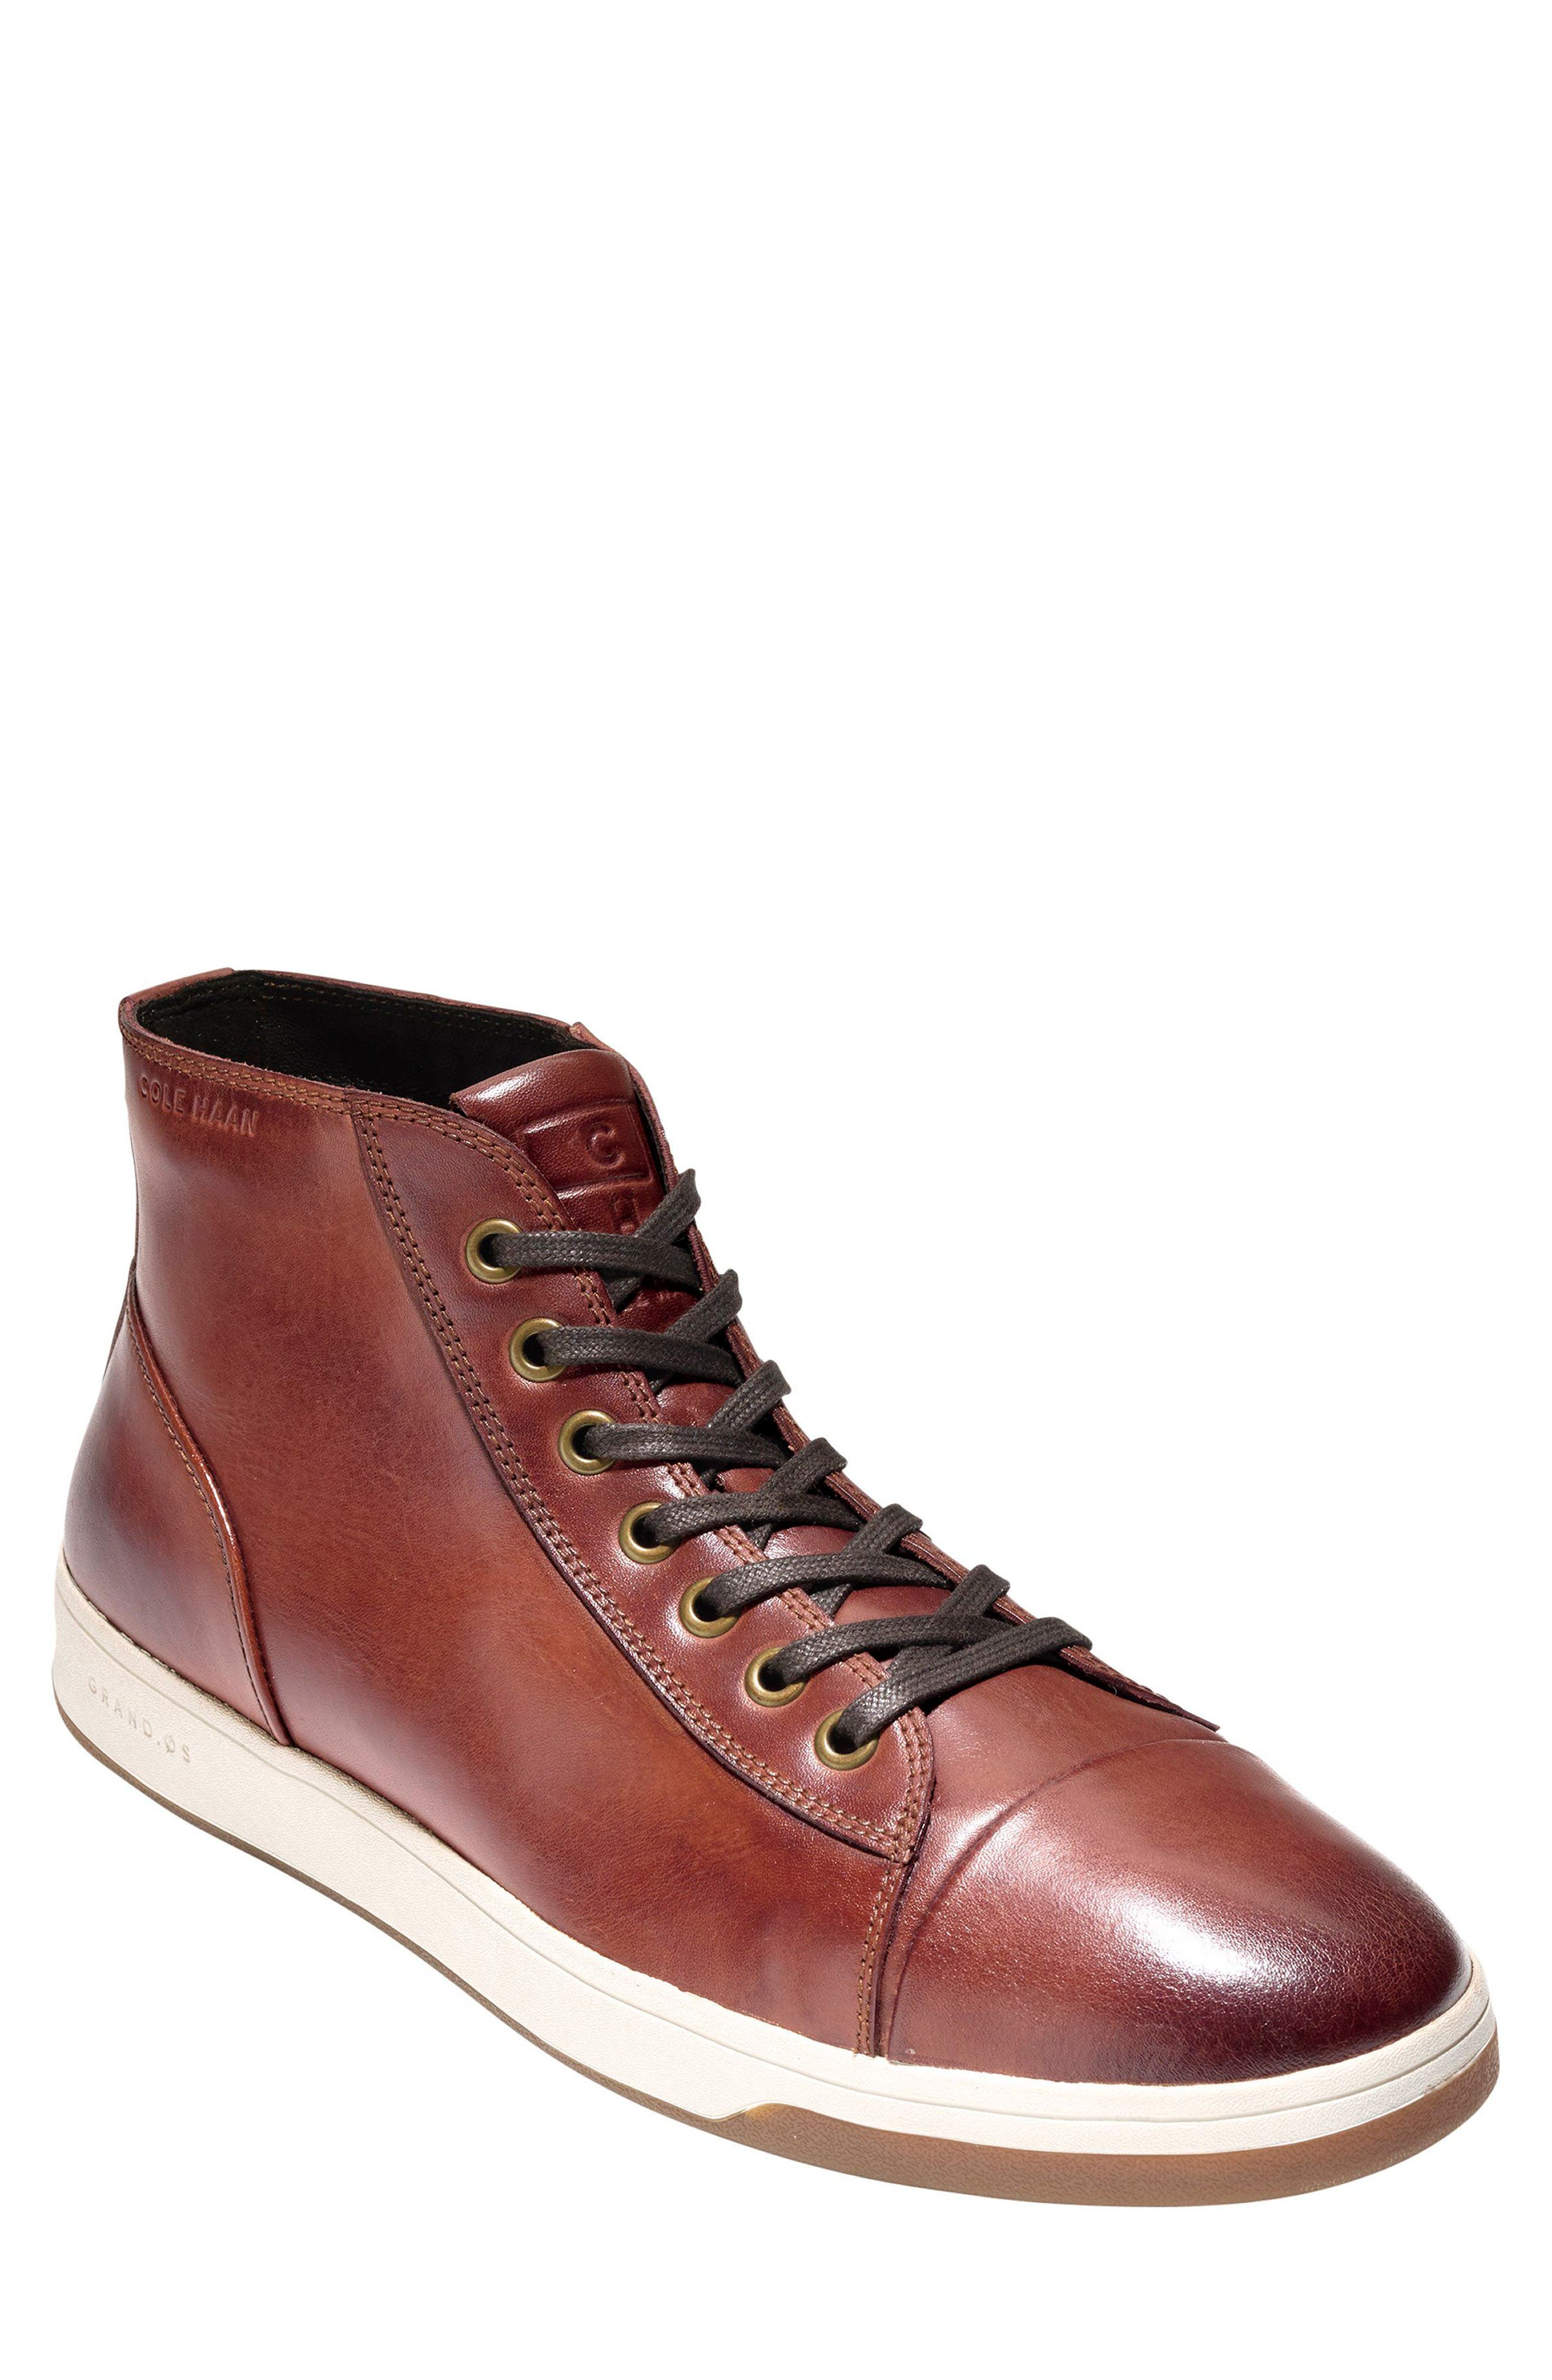 GrandPro High Top Sneaker,                         Main,                         color, Woodbury Leather